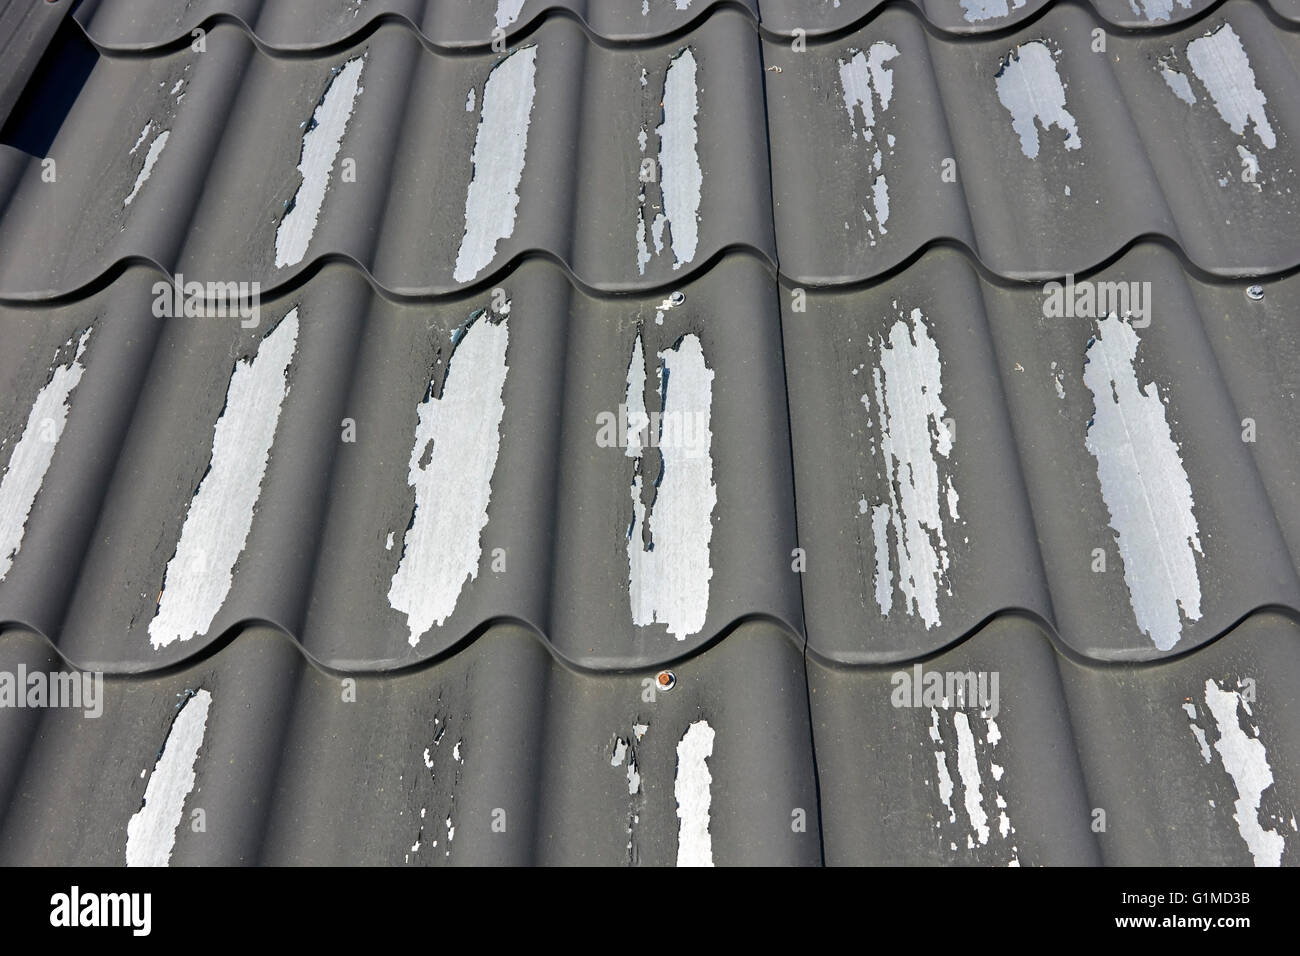 Corrugated Metal Roof With Peeling Paint Finland Stock